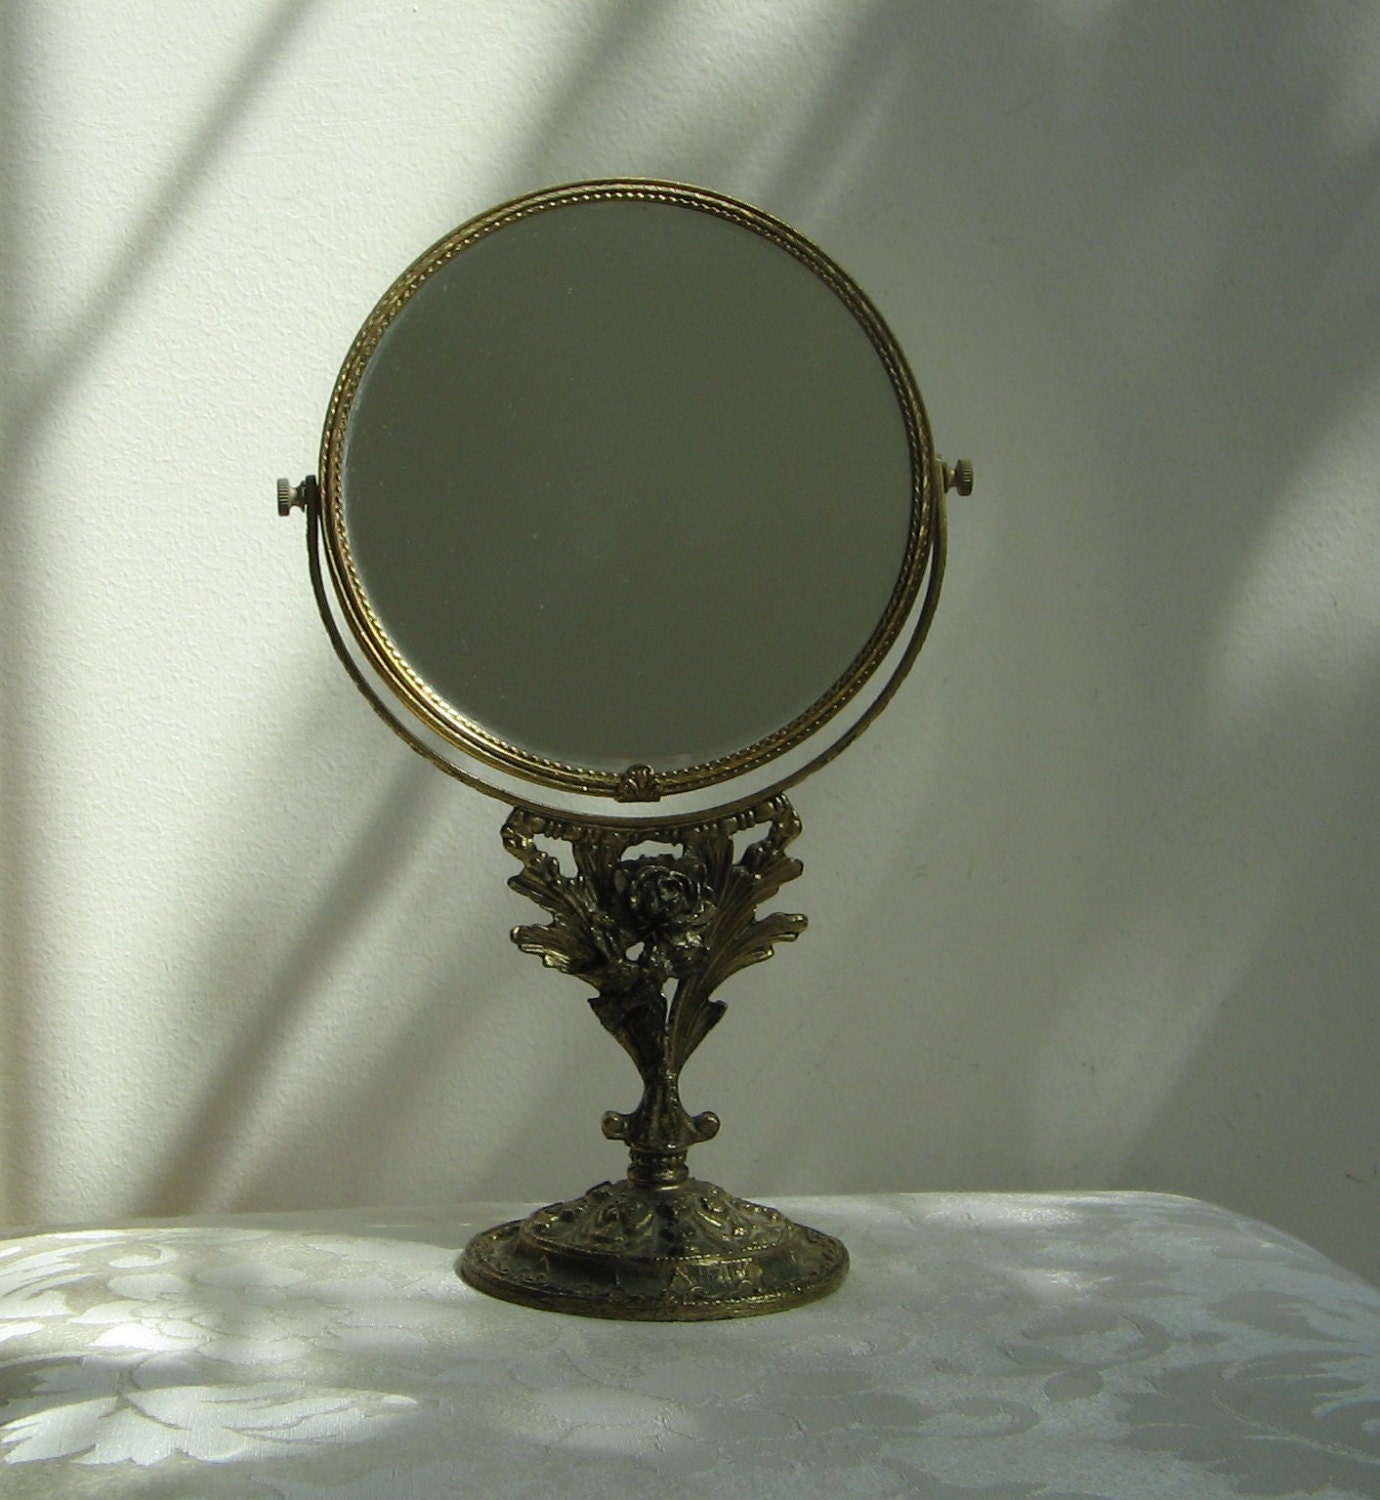 Vintage antique mirror fun